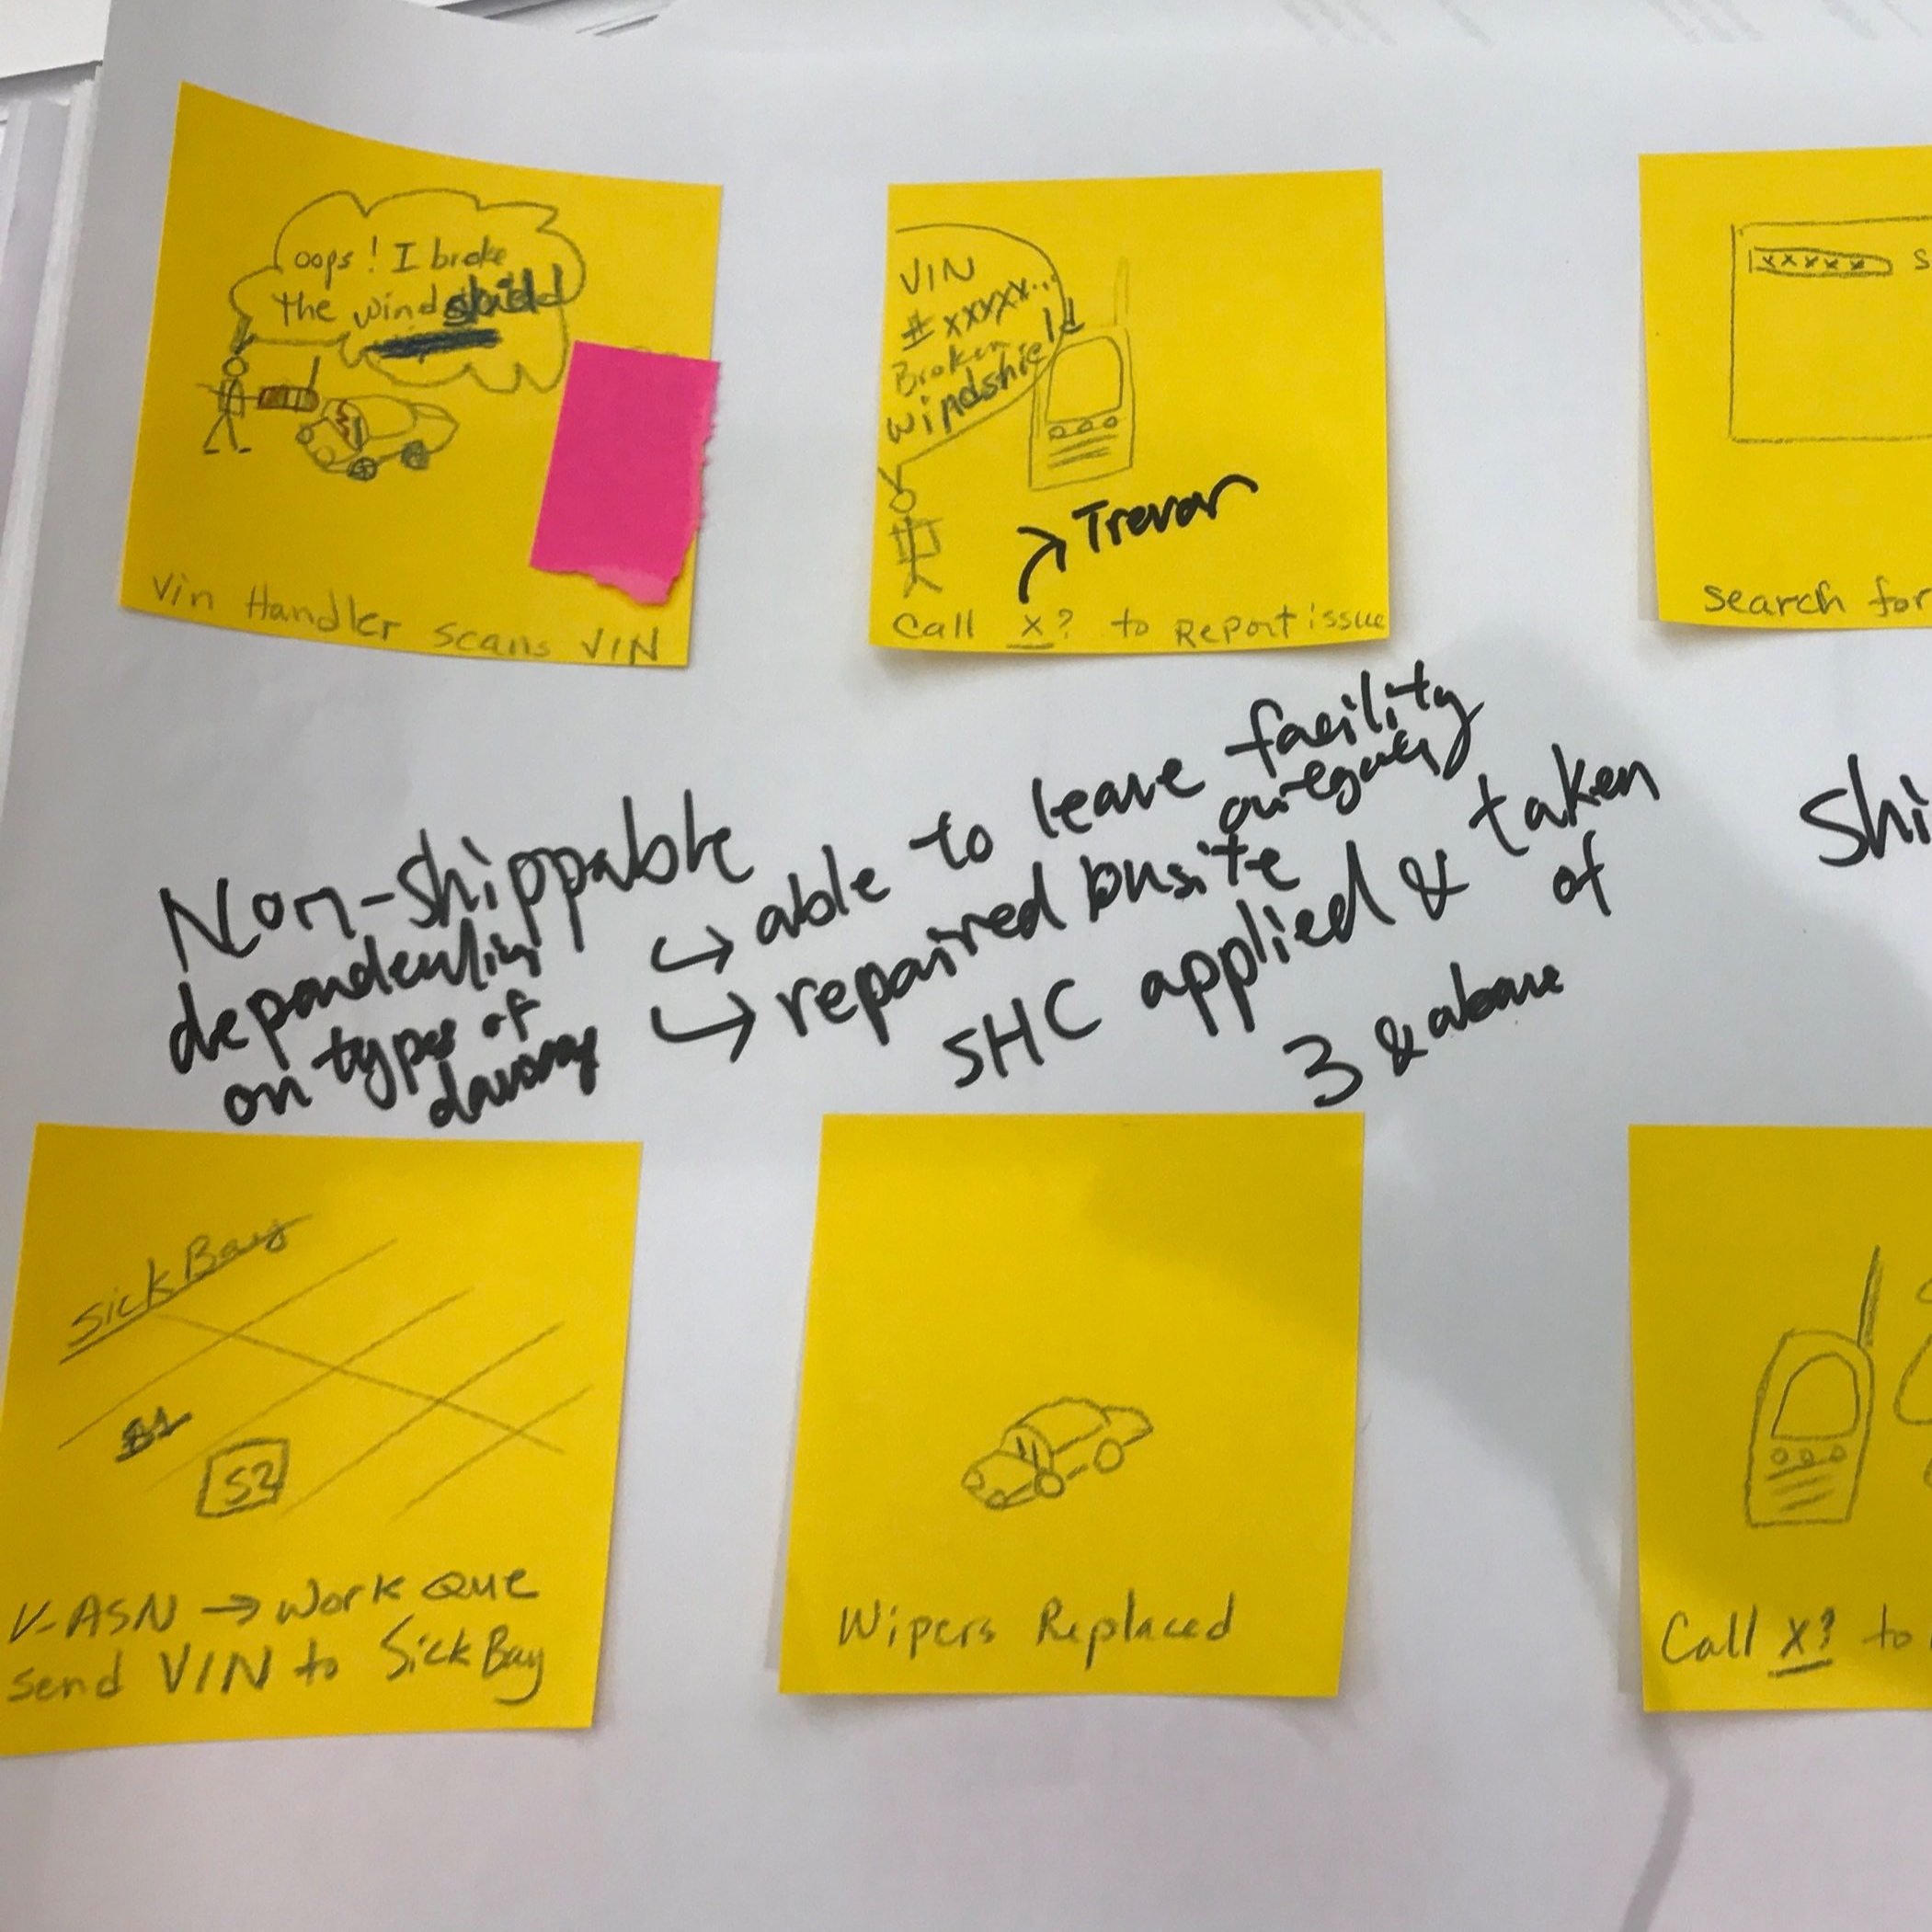 One of the storyboards from a co-creation workshop.